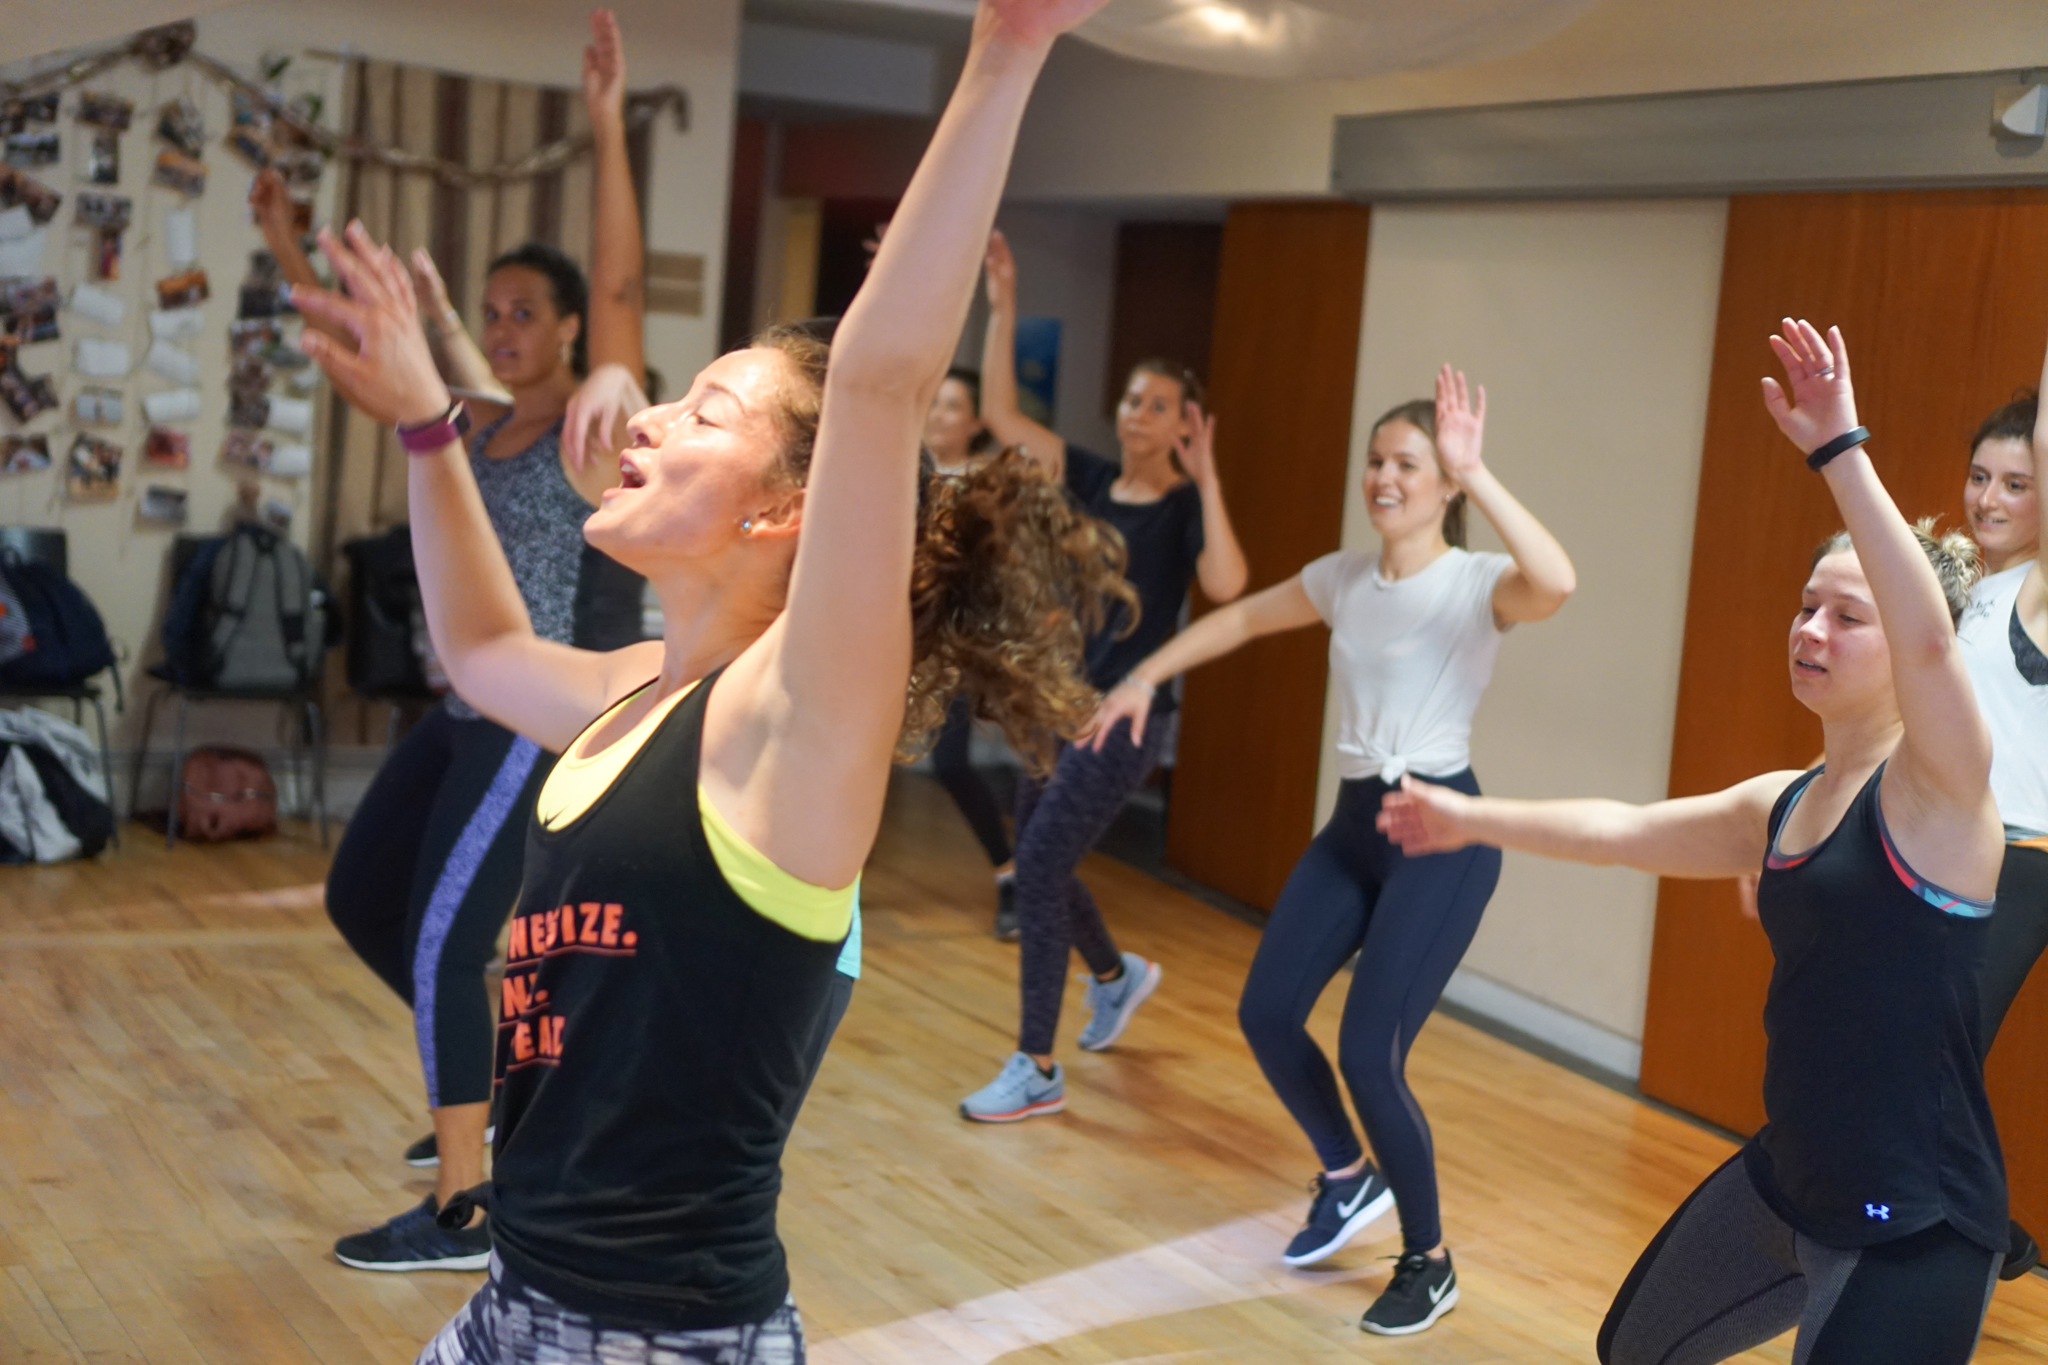 Building community one grapevine at a time - Dance Cardio June 2018